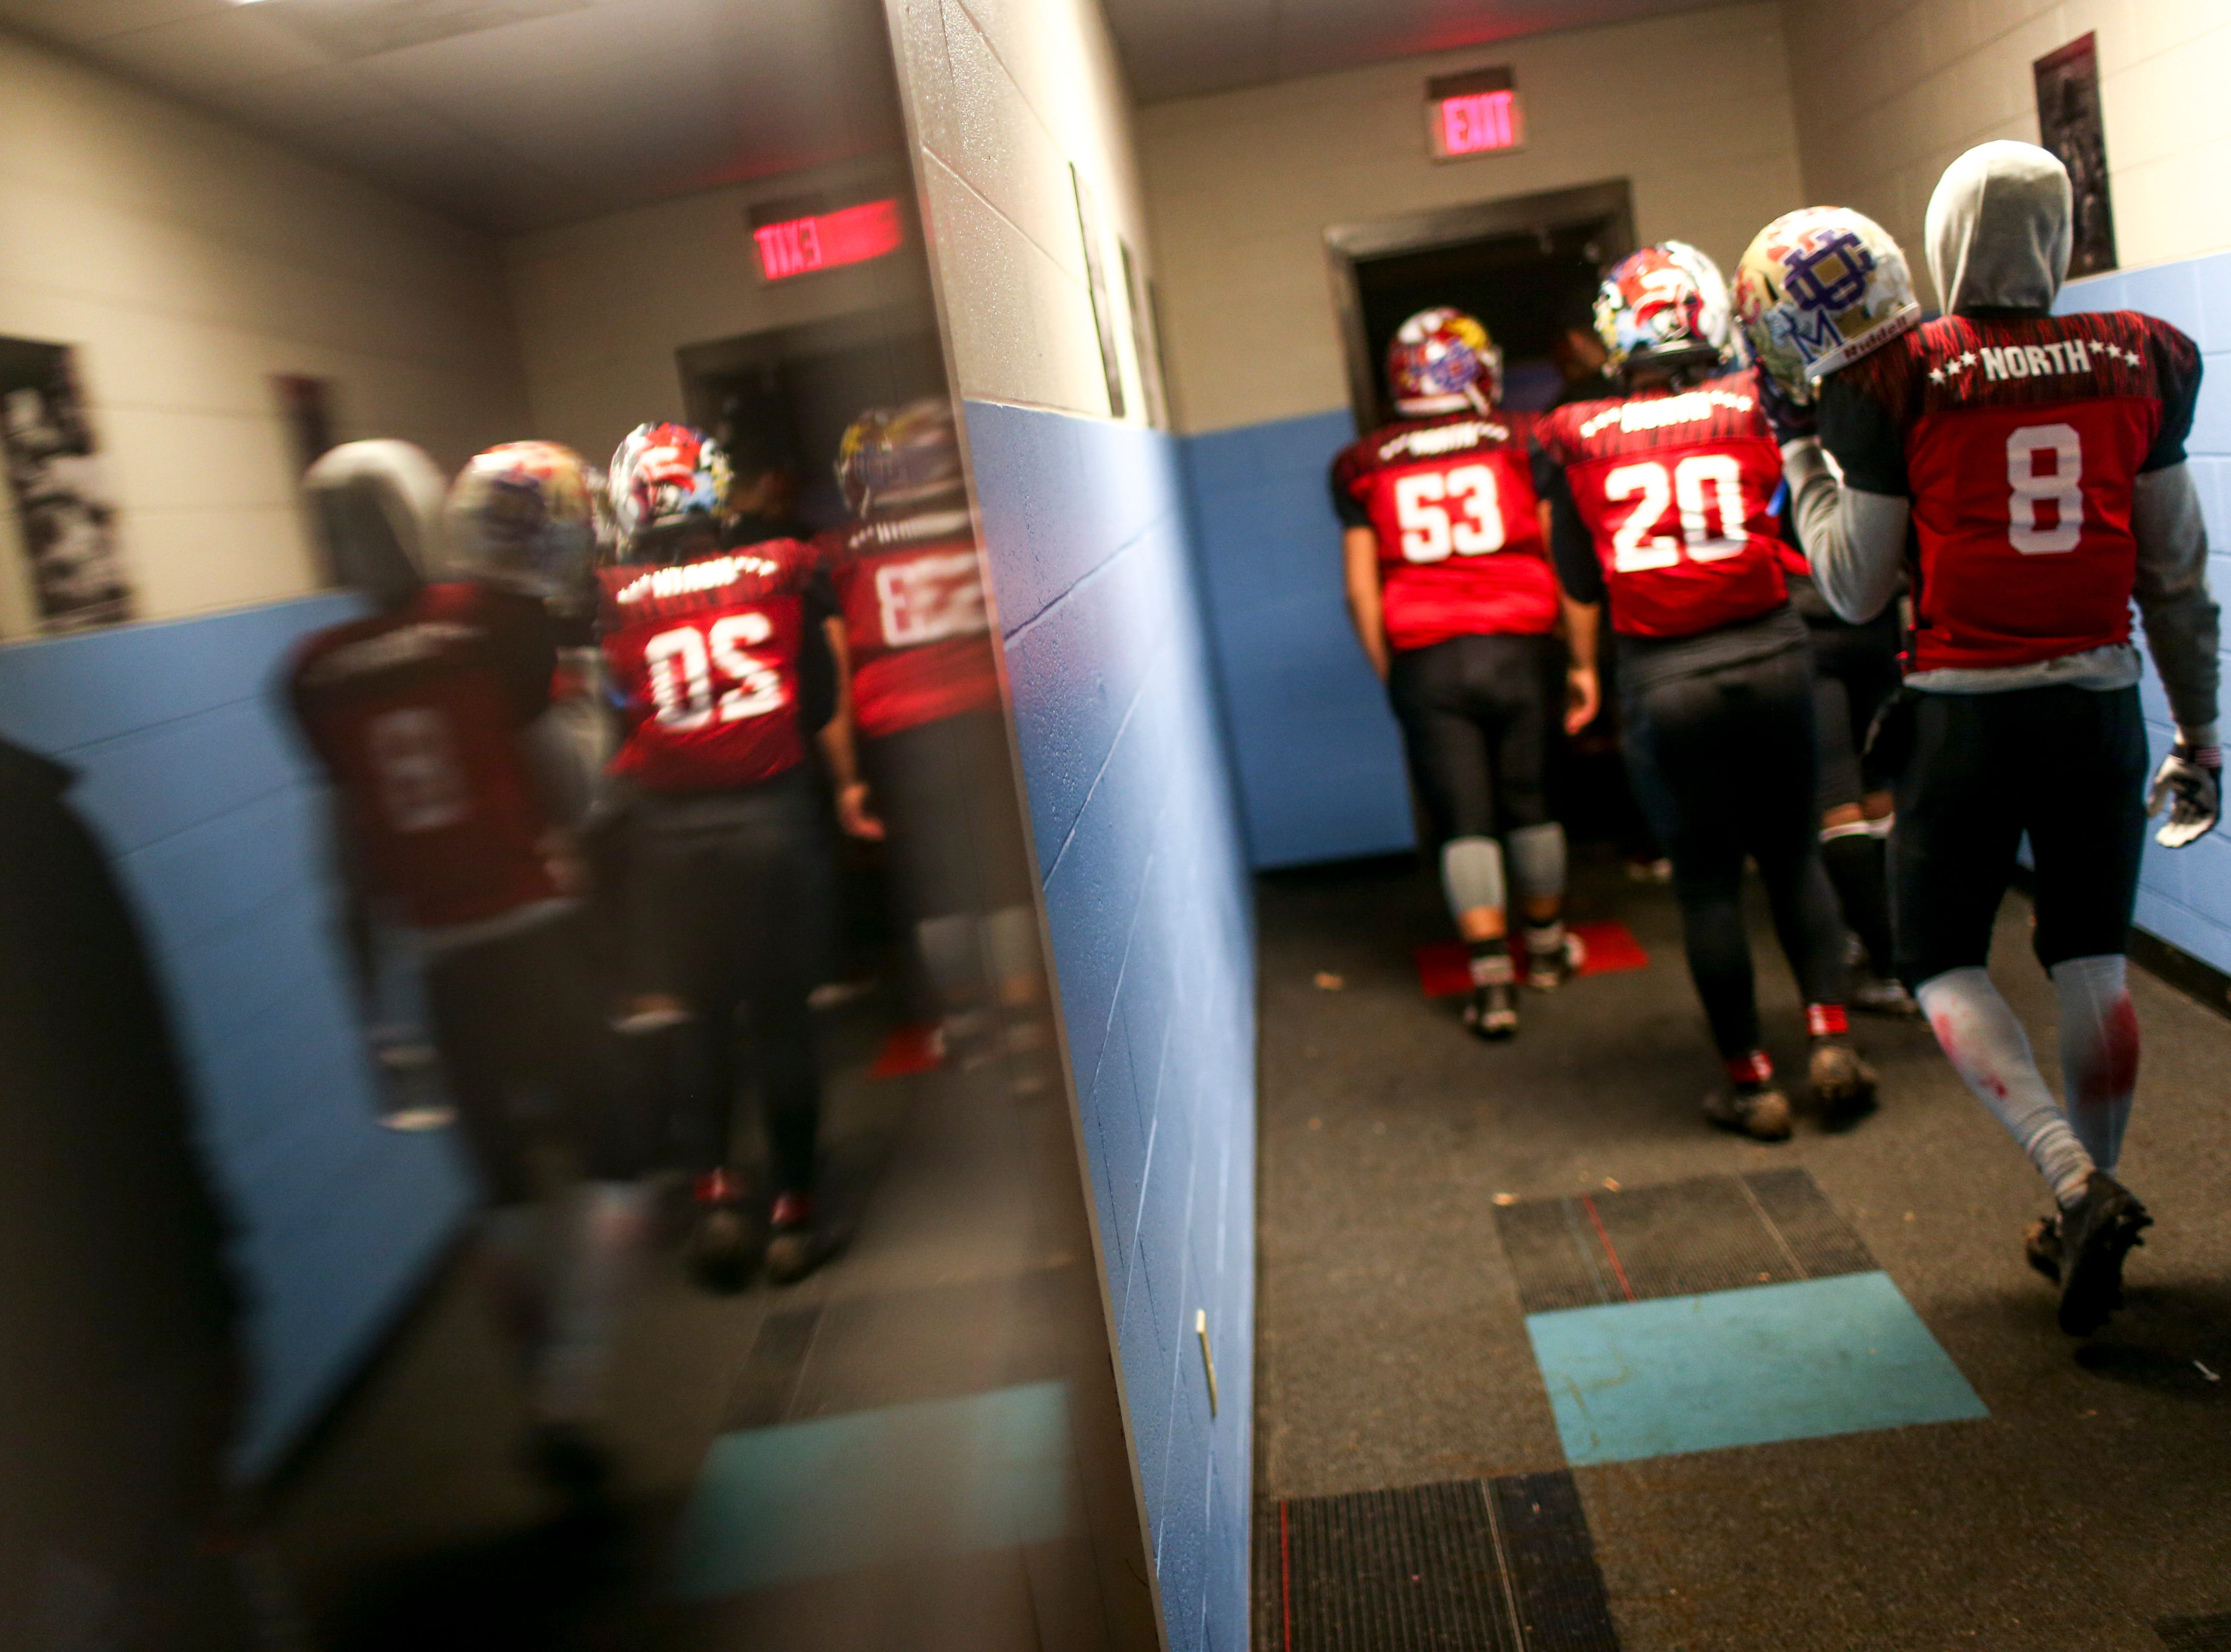 North players walk out of the locker rooms and back to the field from half time during the West Tennessee All-Star football game at University School of Jackson in Jackson, Tenn., on Friday, Dec. 7, 2018.